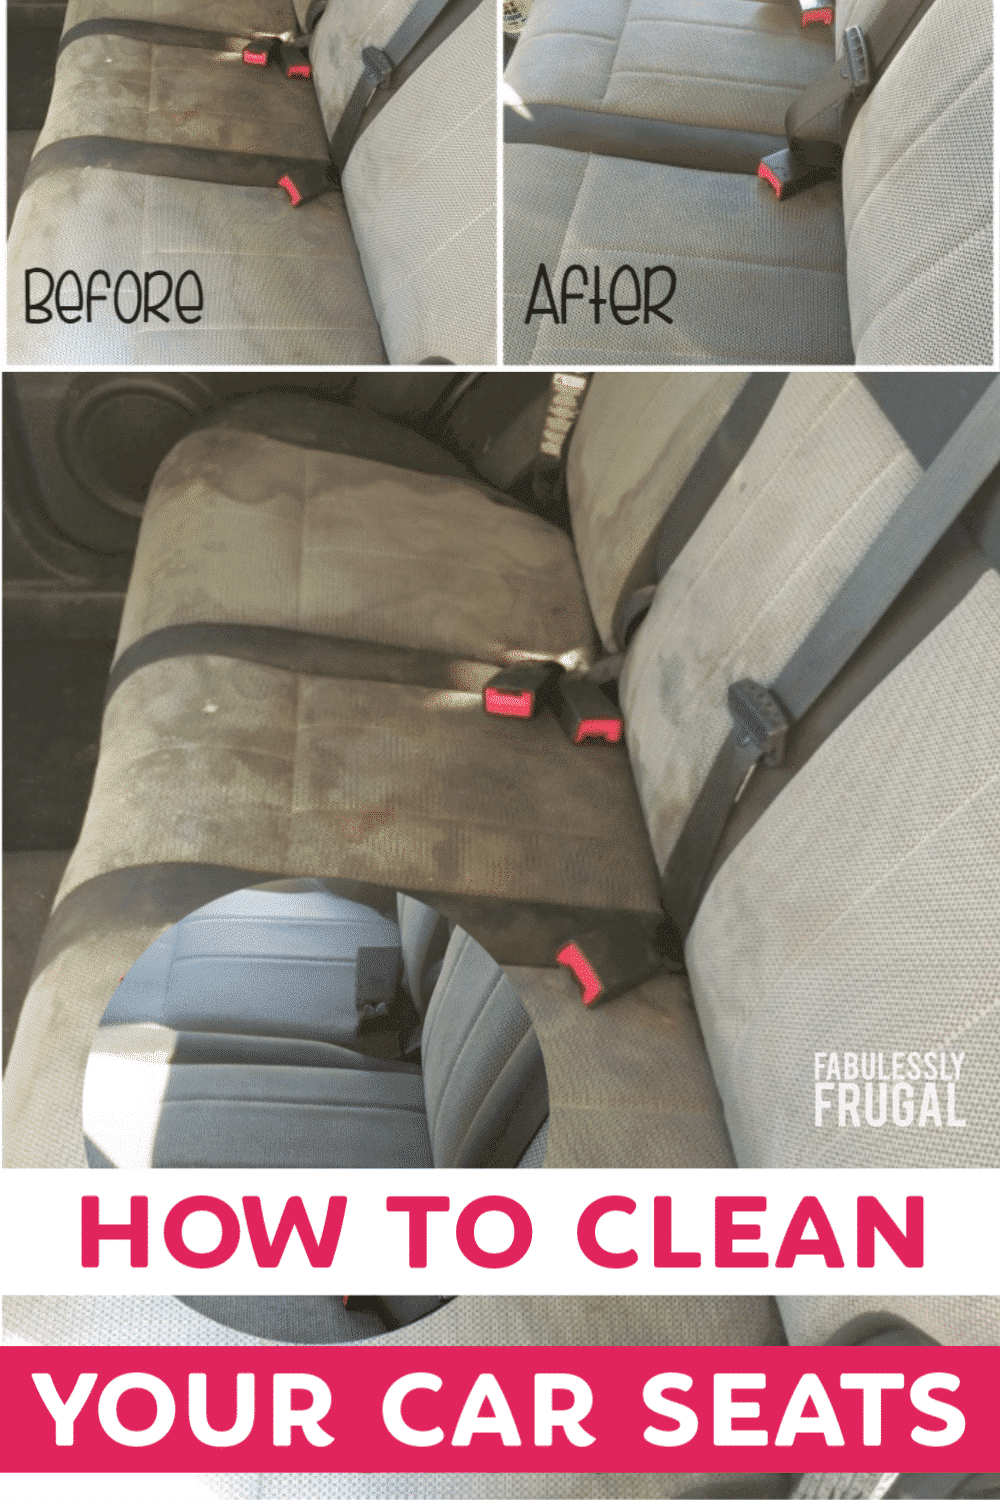 c46f6ae09f22510122b69dd1e6f48124 - How To Get Food Grease Stains Out Of Car Upholstery